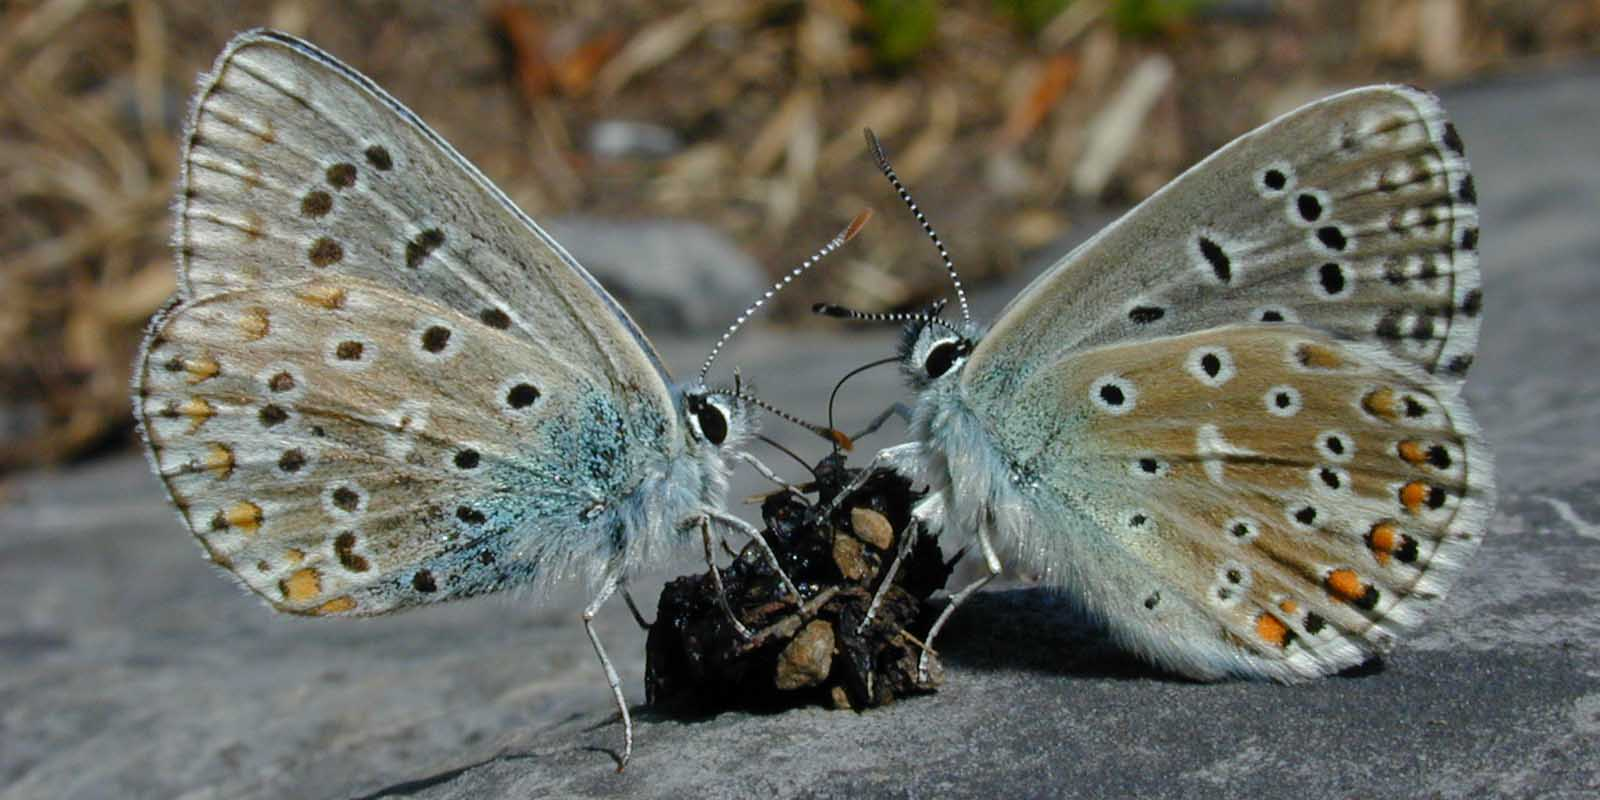 """15. Connolley, William M. Photography. """"Two  Adonis Blue   butterflies  ( Polyommatus bellargus )  feed  on a small lump of  feces  lying on a rock."""" June 2001  https://en.wikipedia.org/wiki/File:Adonis_Blue_butterflies.jpg"""